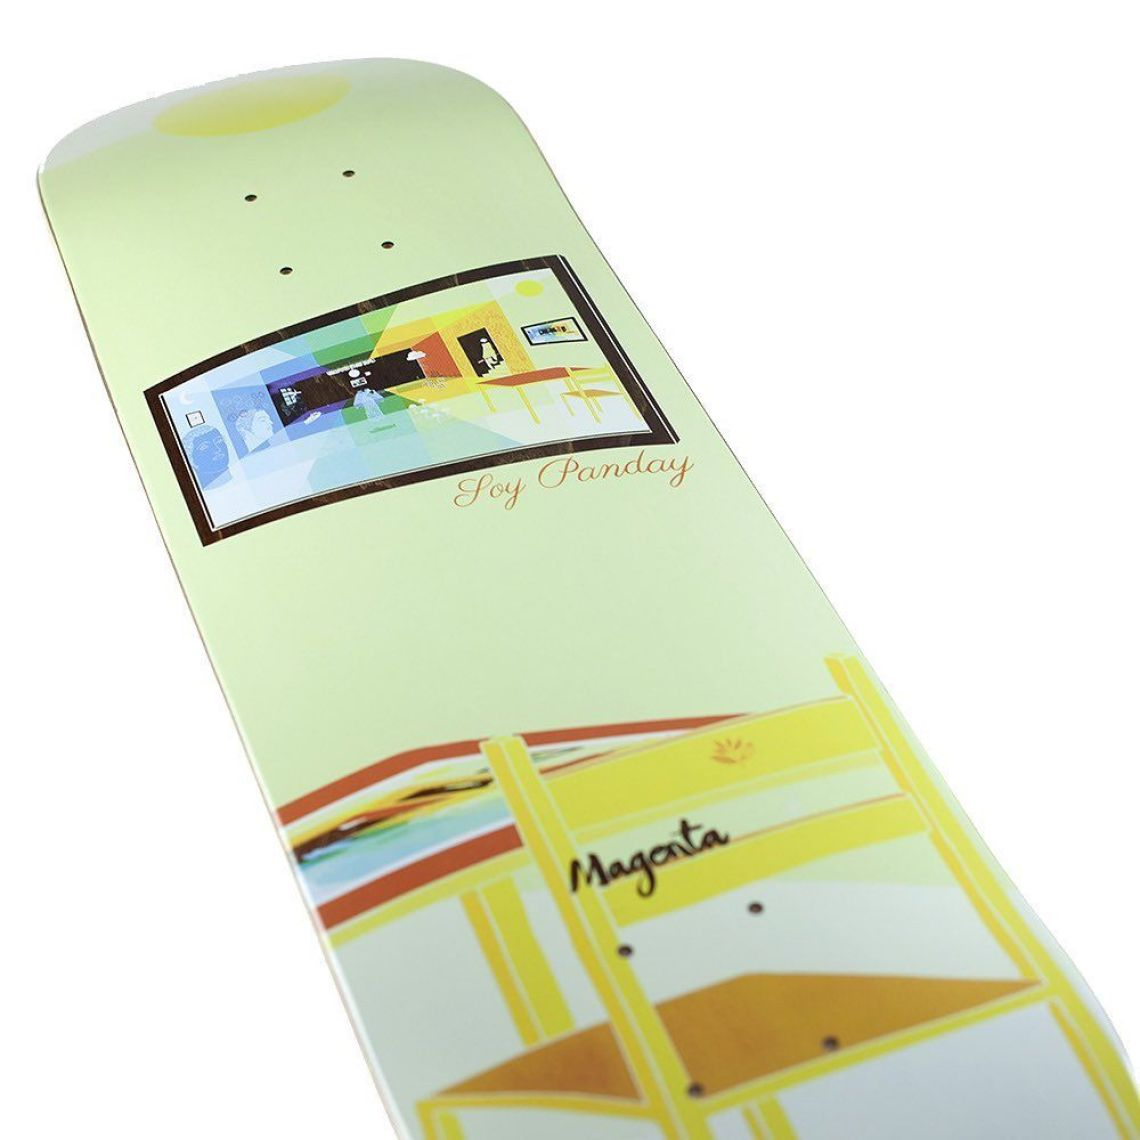 Sleep Board Series By Soy Panday For Magenta Skateboards 2